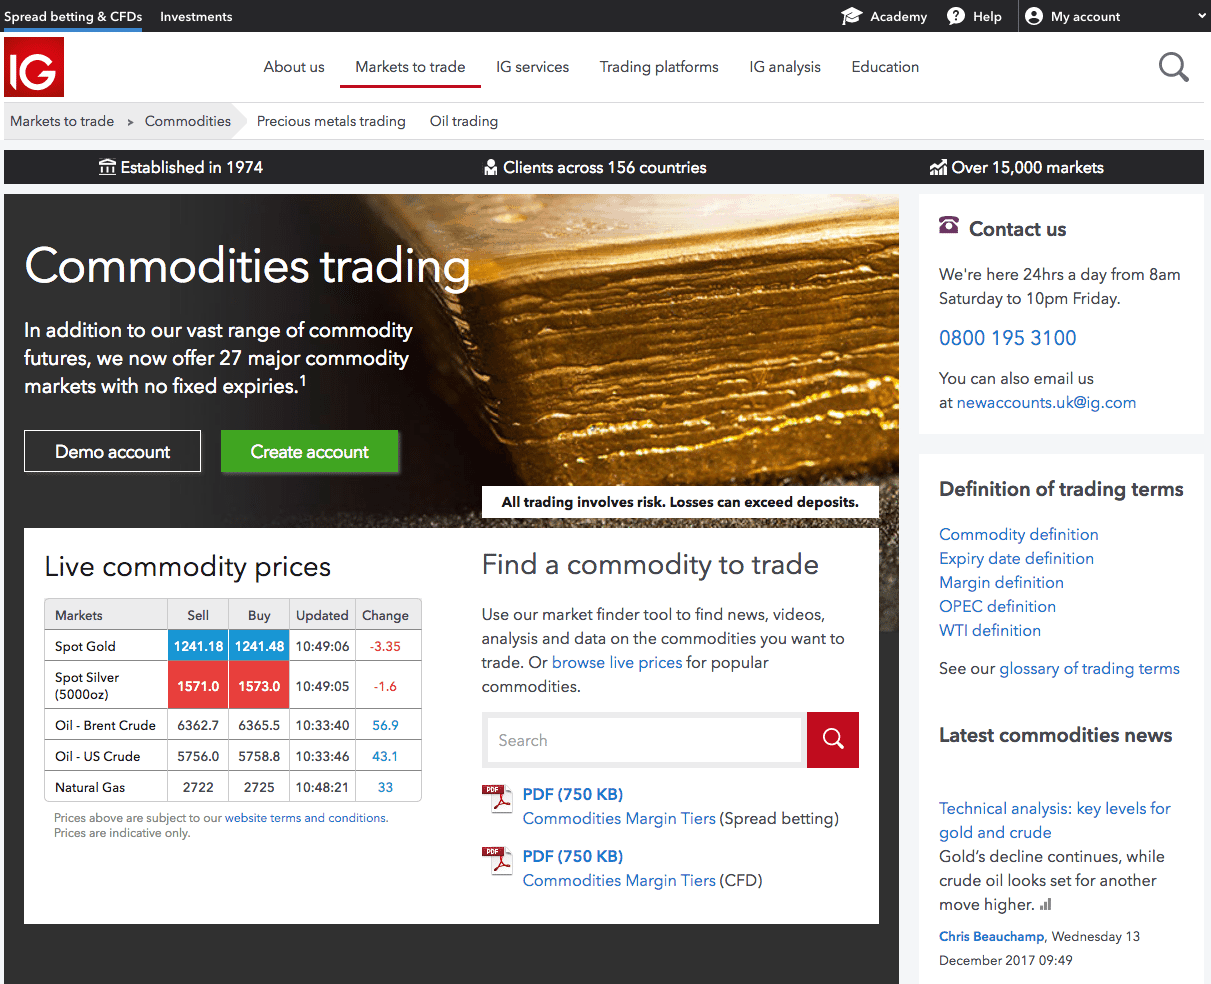 Commodities market page from IG.com